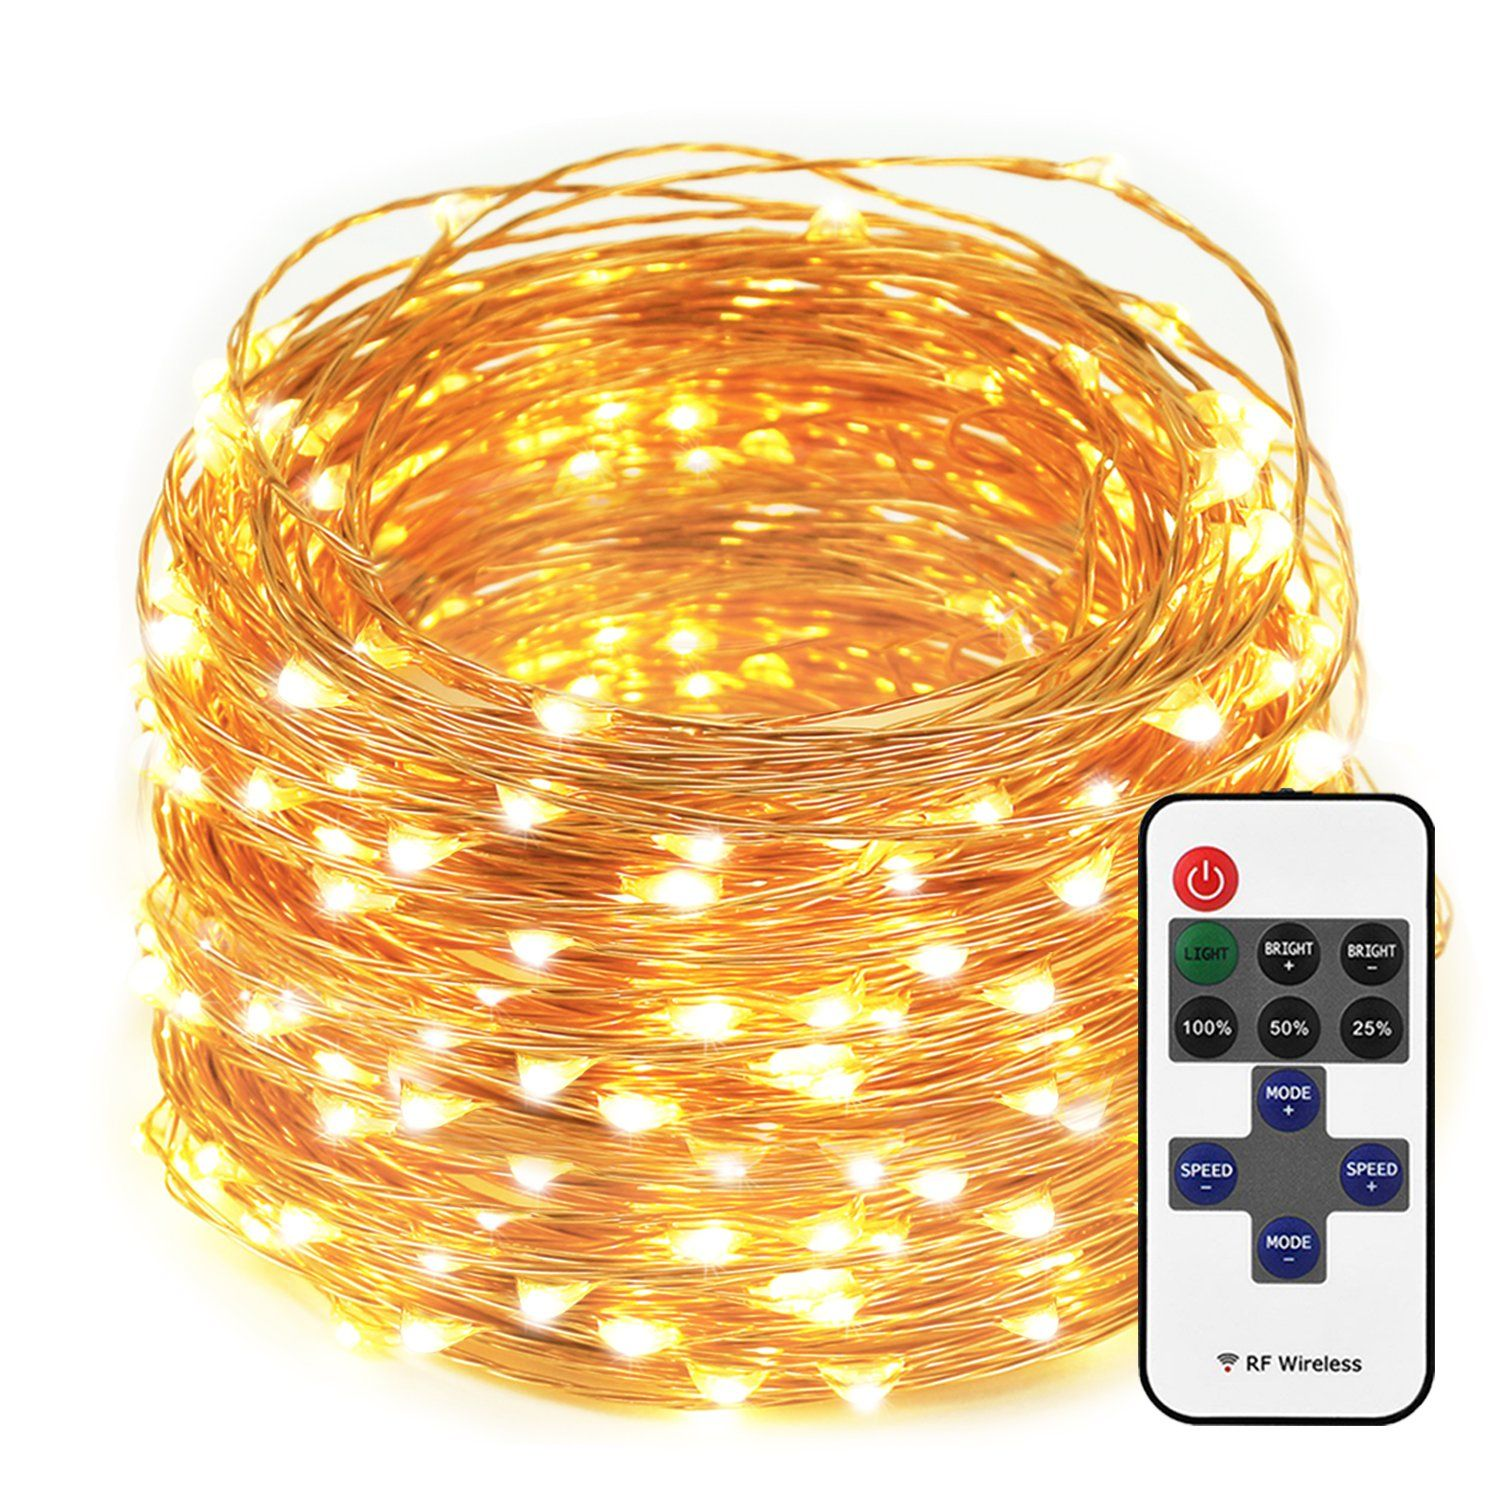 LED String Lights Dimmable with Remote Control, 66ft 200 LEDs ...